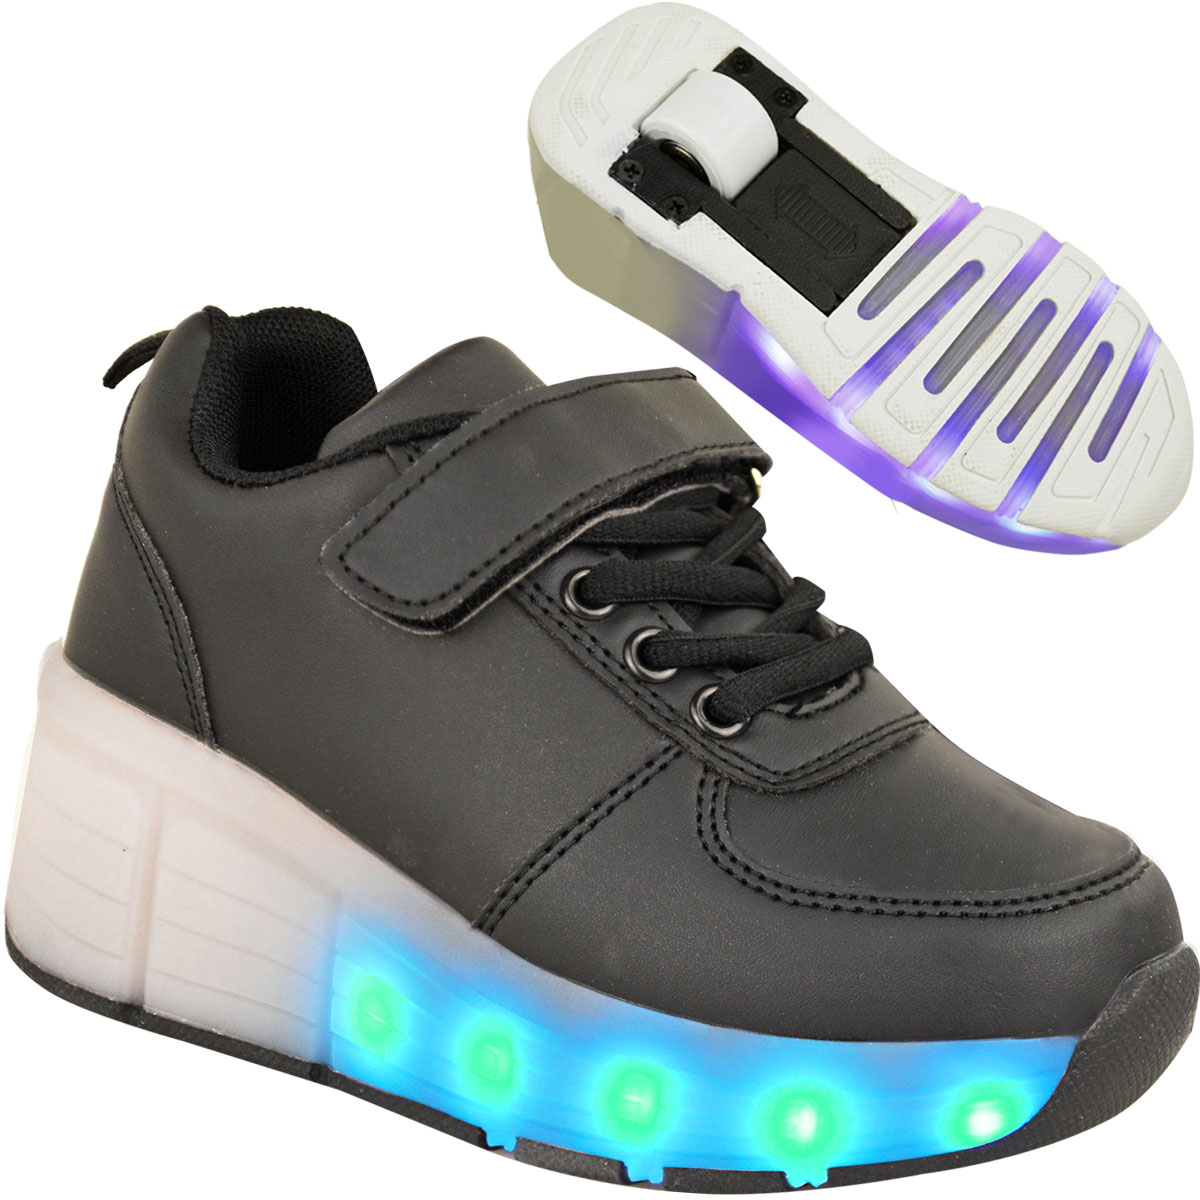 Find great deals on eBay for Boys Flashing Light Shoes in Boys' Shoes and Accessories. Shop with confidence.